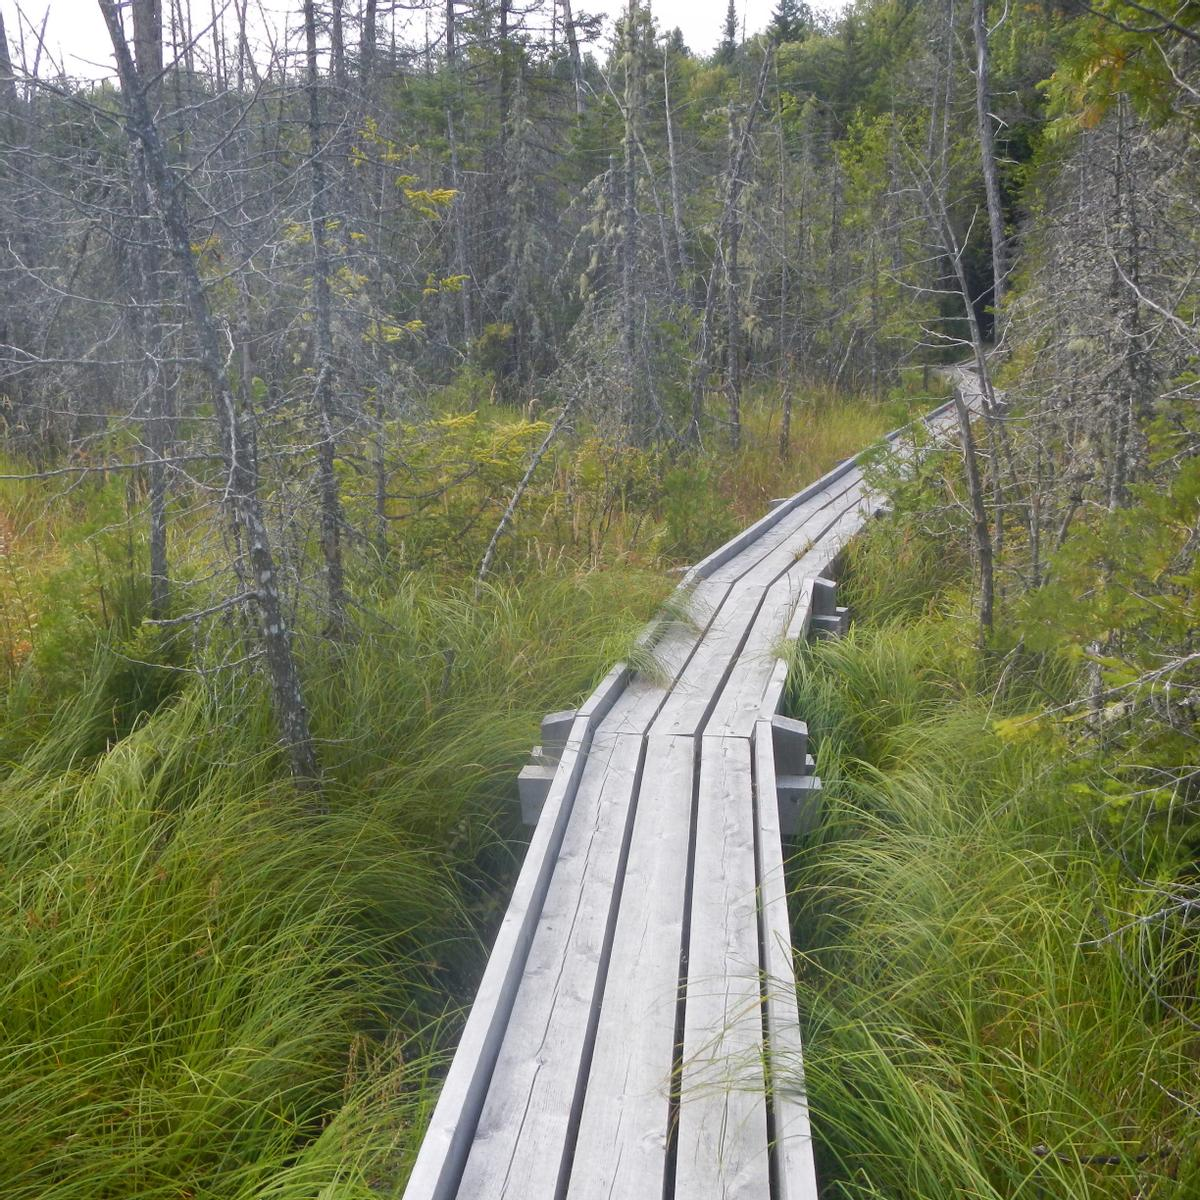 A somewhat narrow wooden boardwalk goes into a swamp